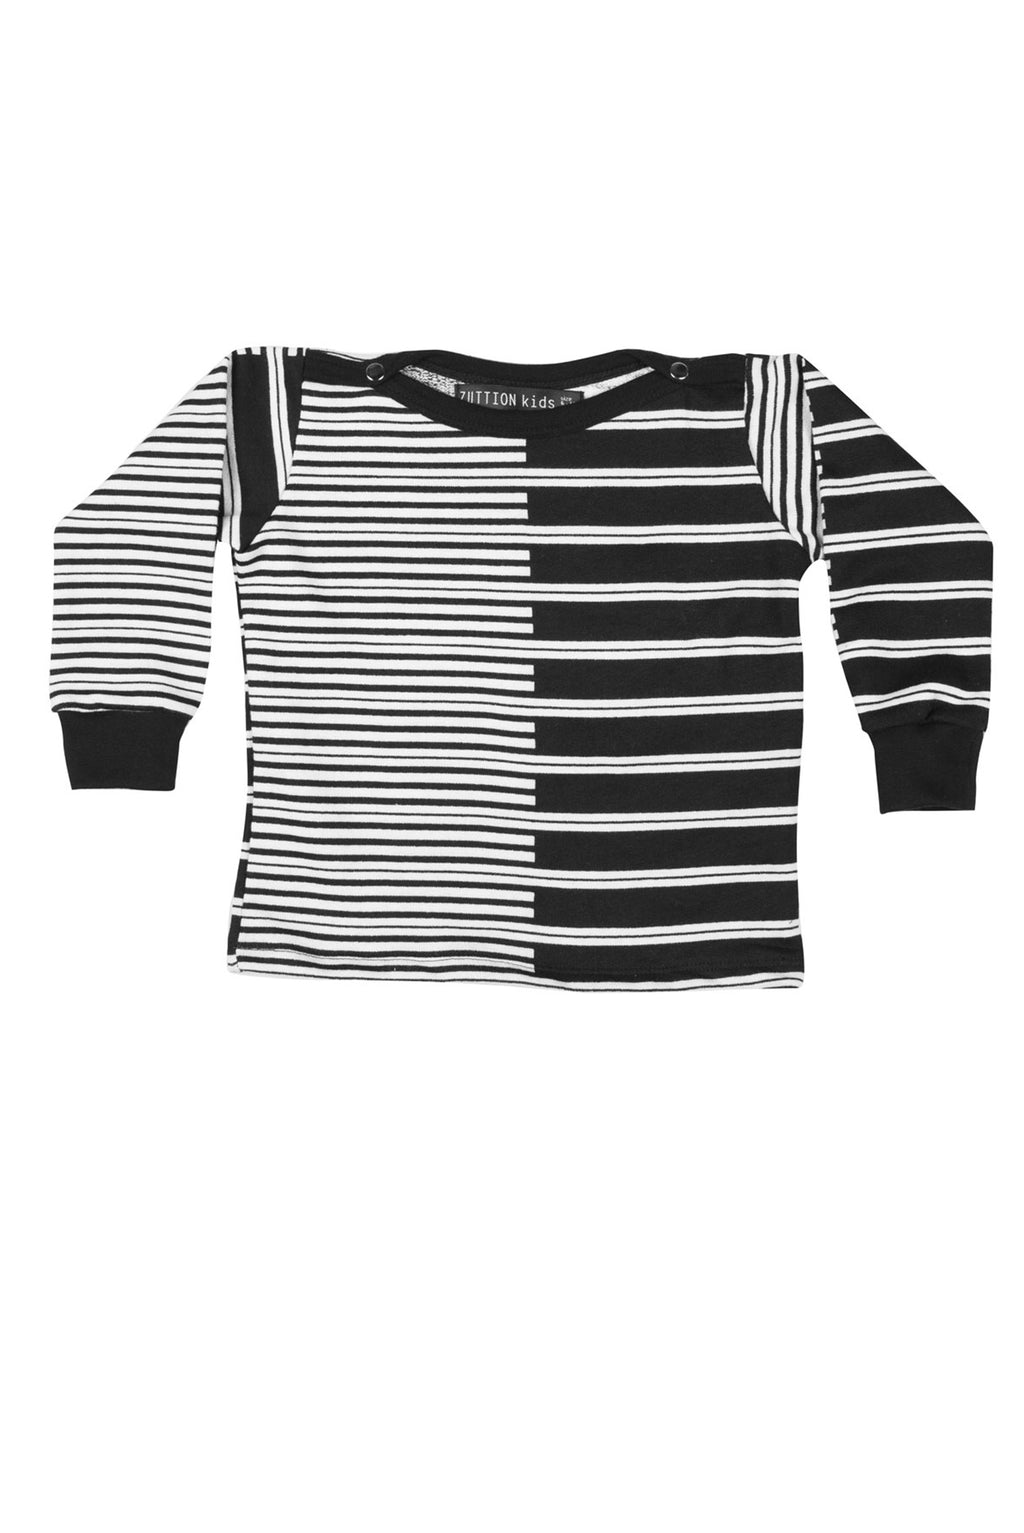 2 Stripes Baby Sweater White/Black - Zuttion